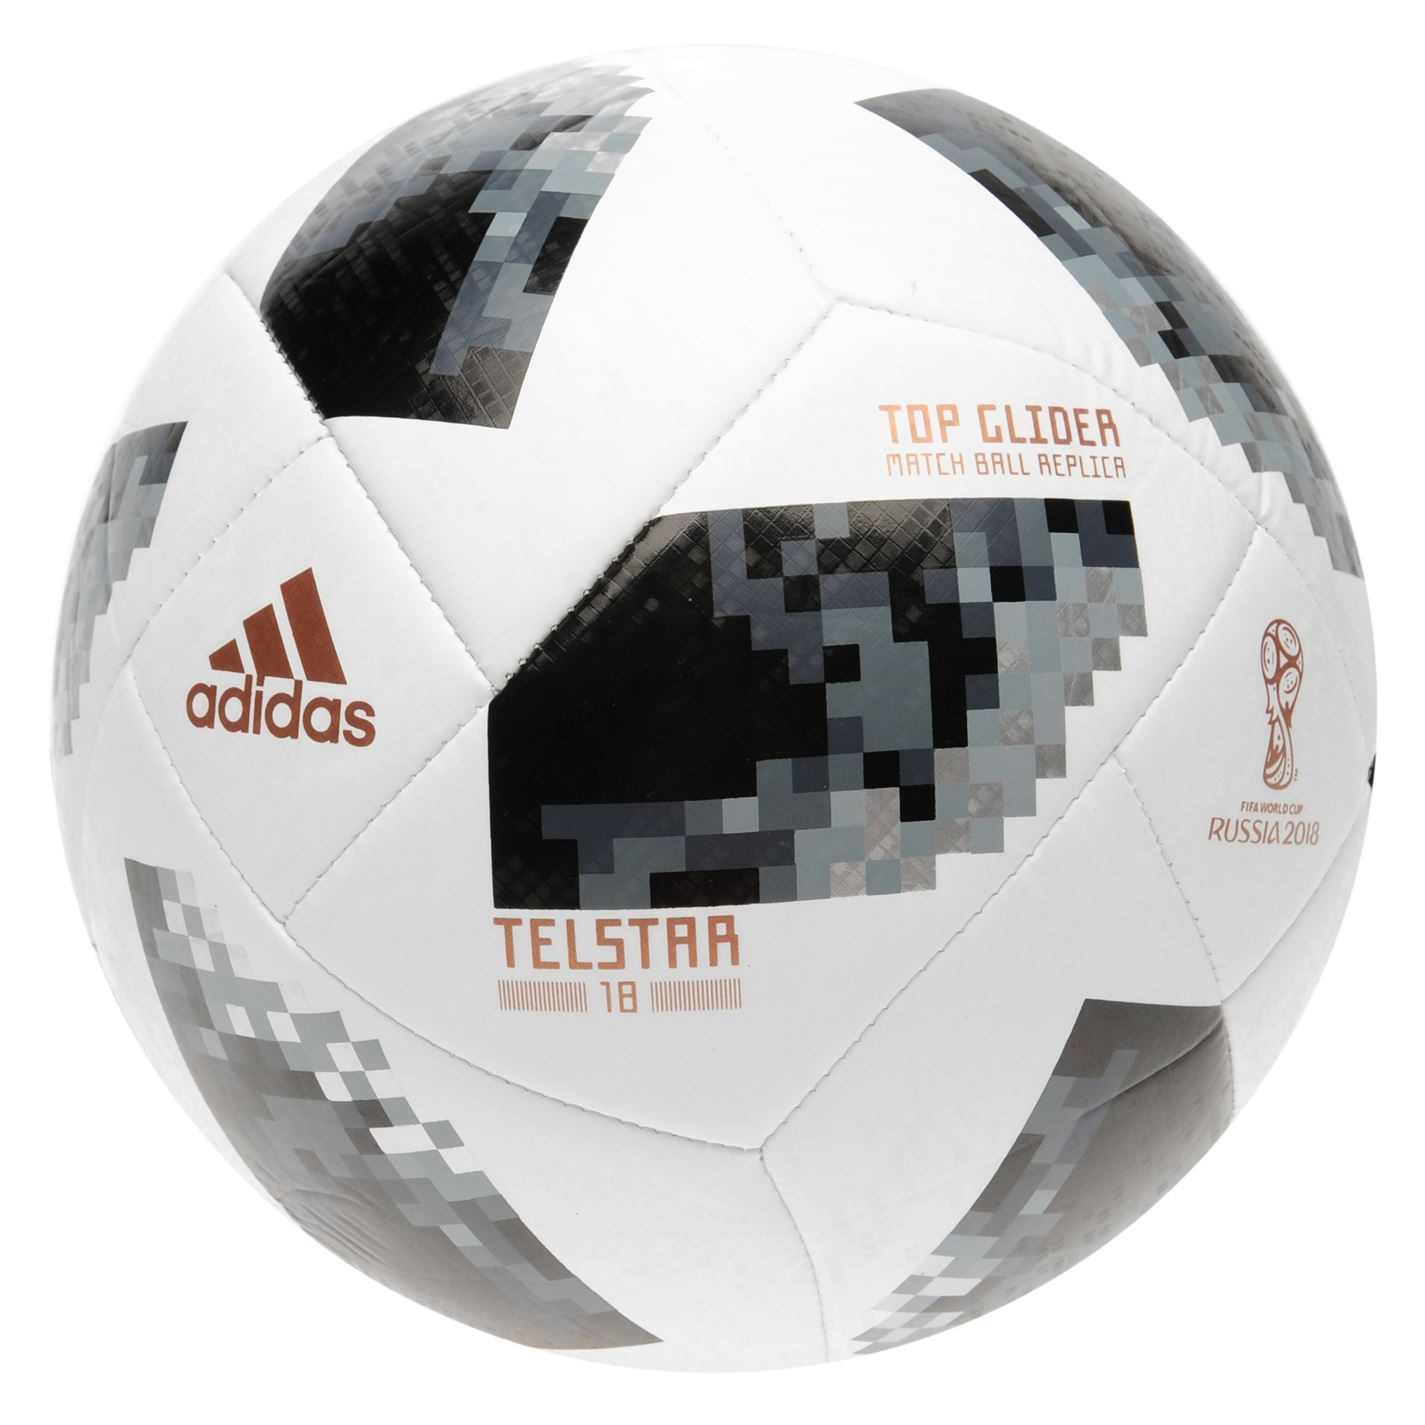 5d83242c3 adidas World Cup Russia 2018 Telstar Top Glider Football White/Black Soccer  Ball